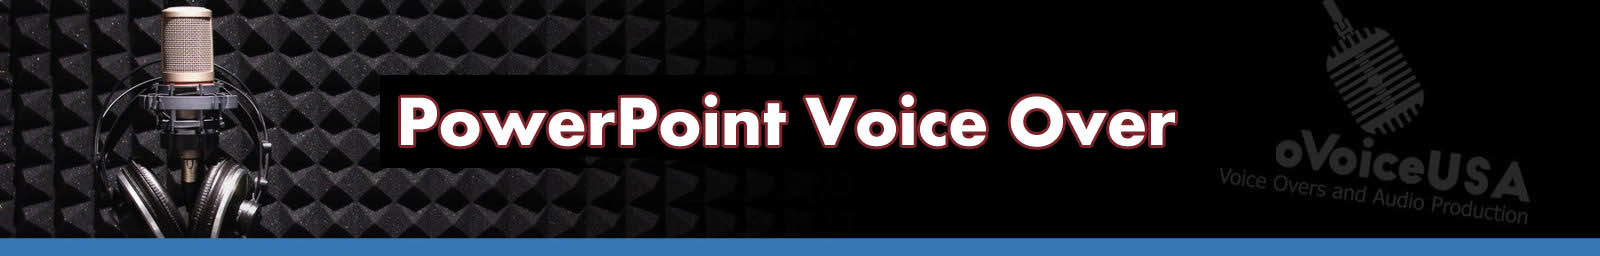 PowerPoint Voice Over Header